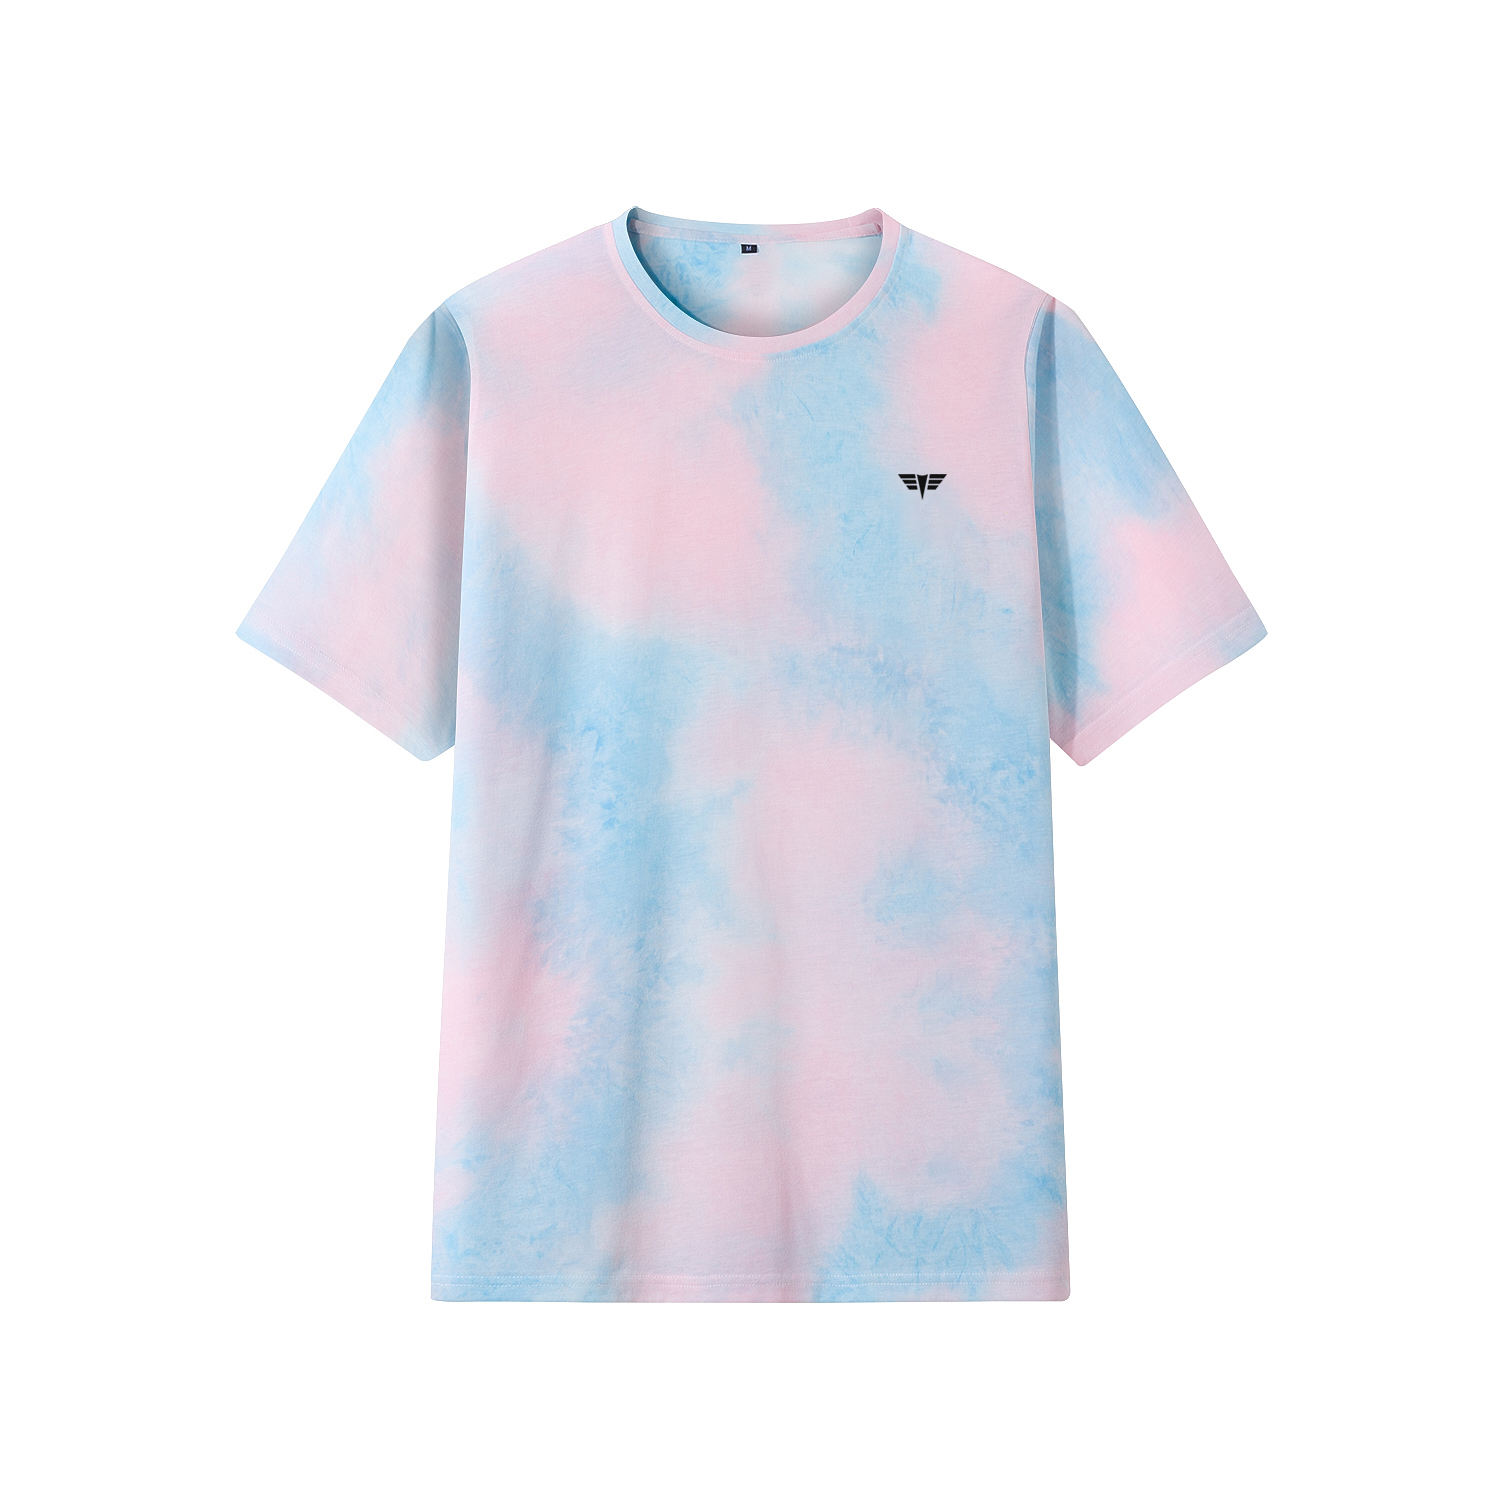 Fashion Tie Dye T Shirt For Men Casual Shirts Short Sleeves Multi Color T-Shirts For Man